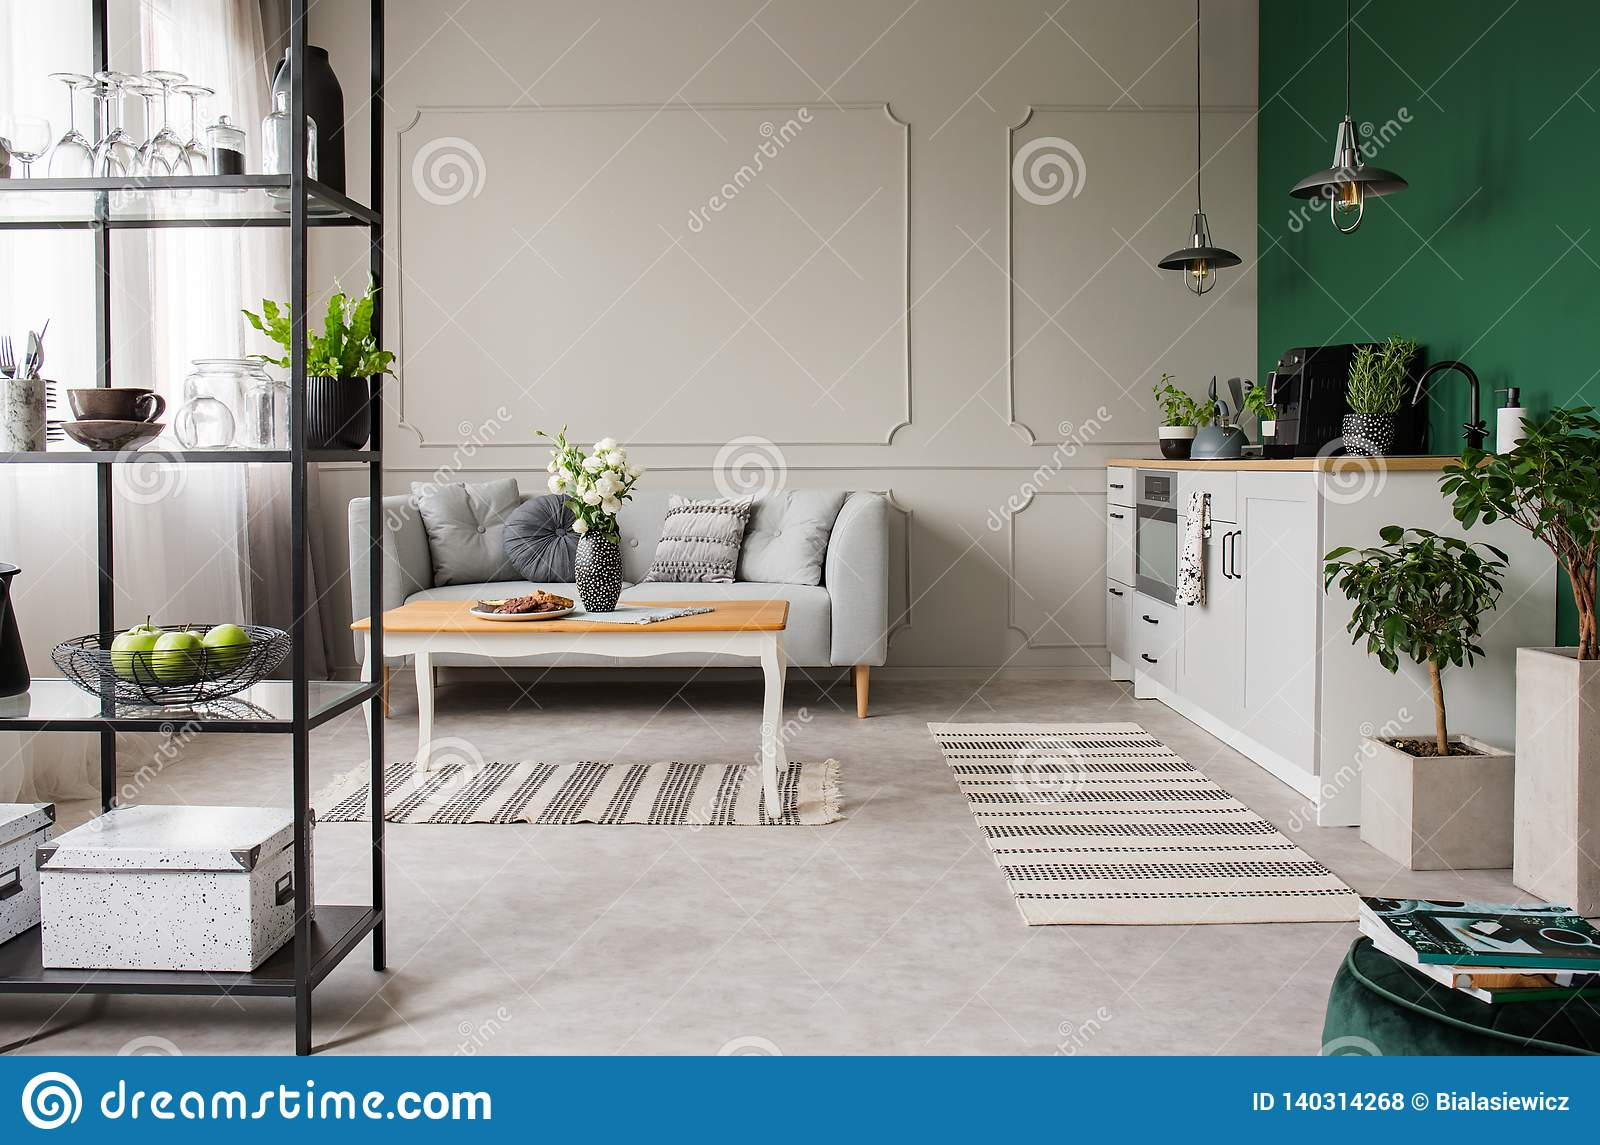 Grey And Green Open Plan Kitchen And Living Room, Real Photo ...